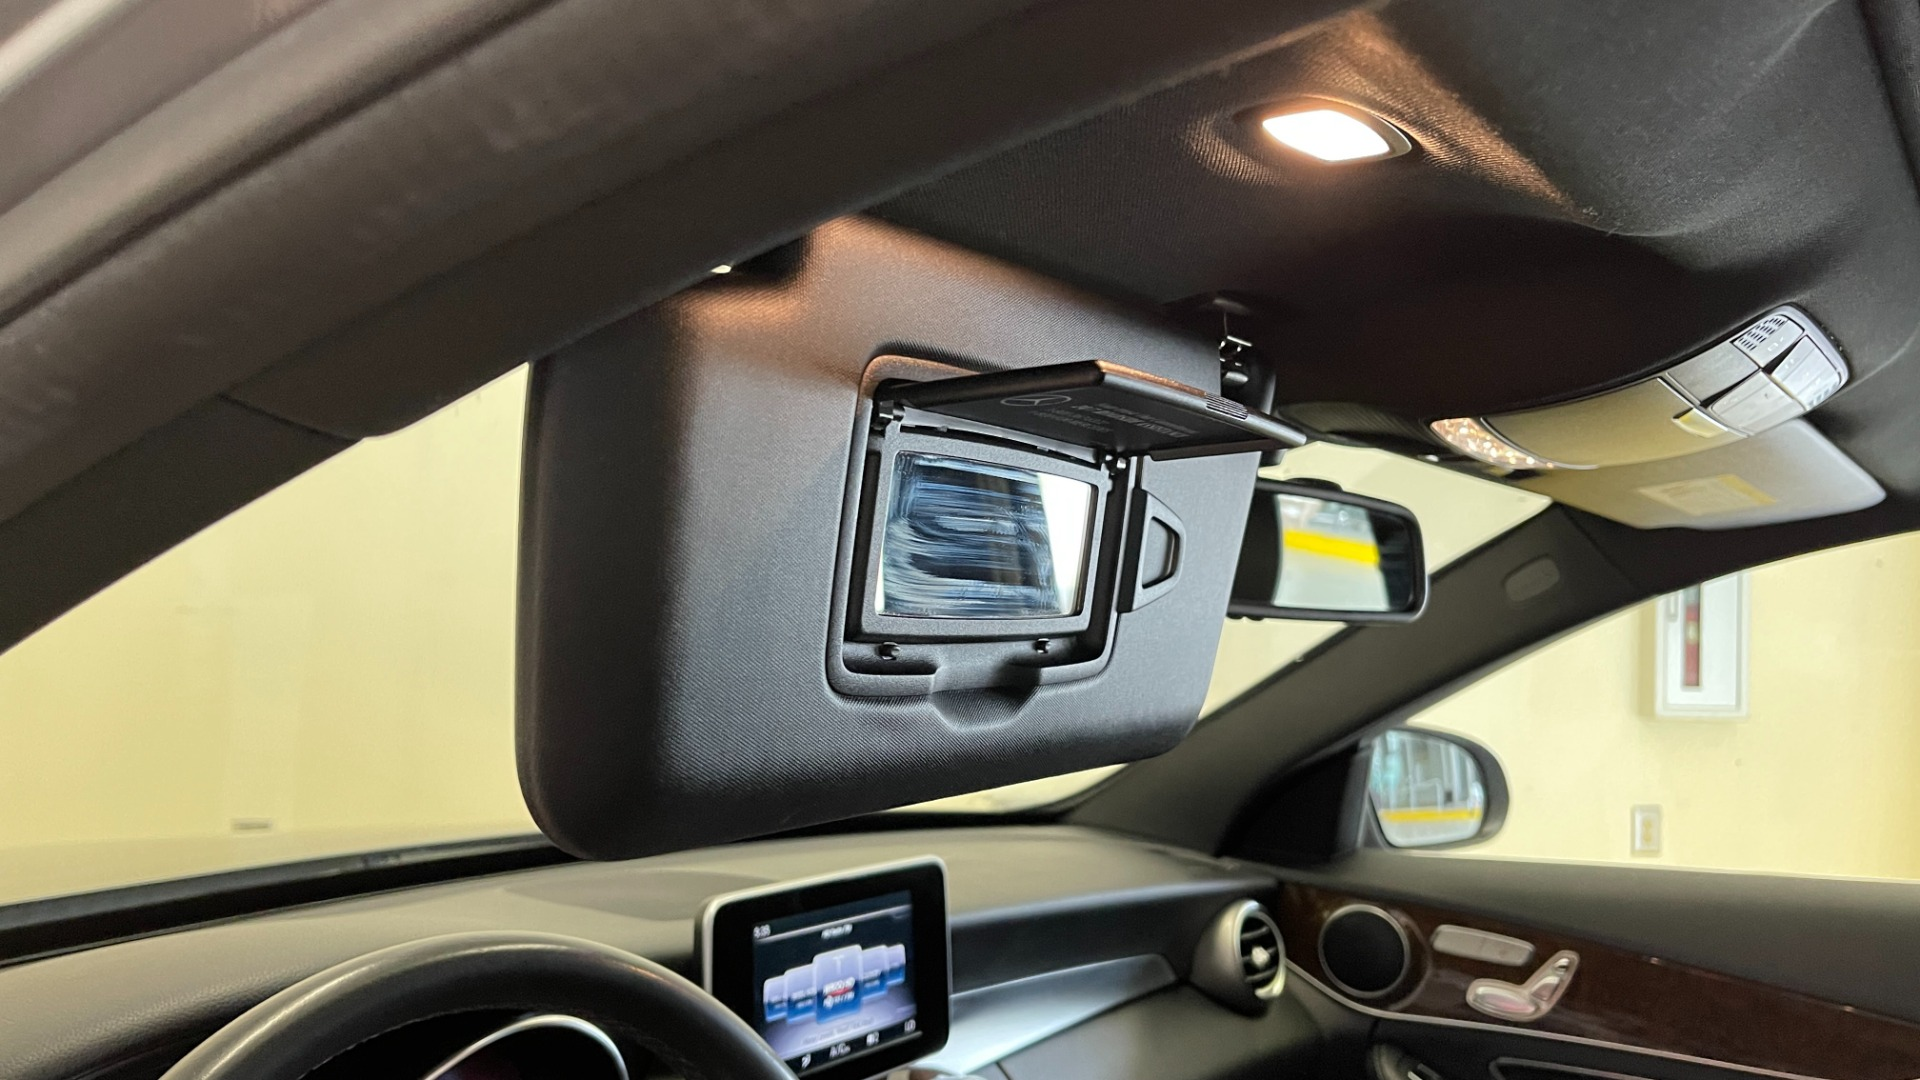 Used 2018 Mercedes-Benz C-CLASS C 300 PREMIUM / SUNROOF / APPLE CARPLAY / HTD STS / REARVIEW for sale $31,795 at Formula Imports in Charlotte NC 28227 36